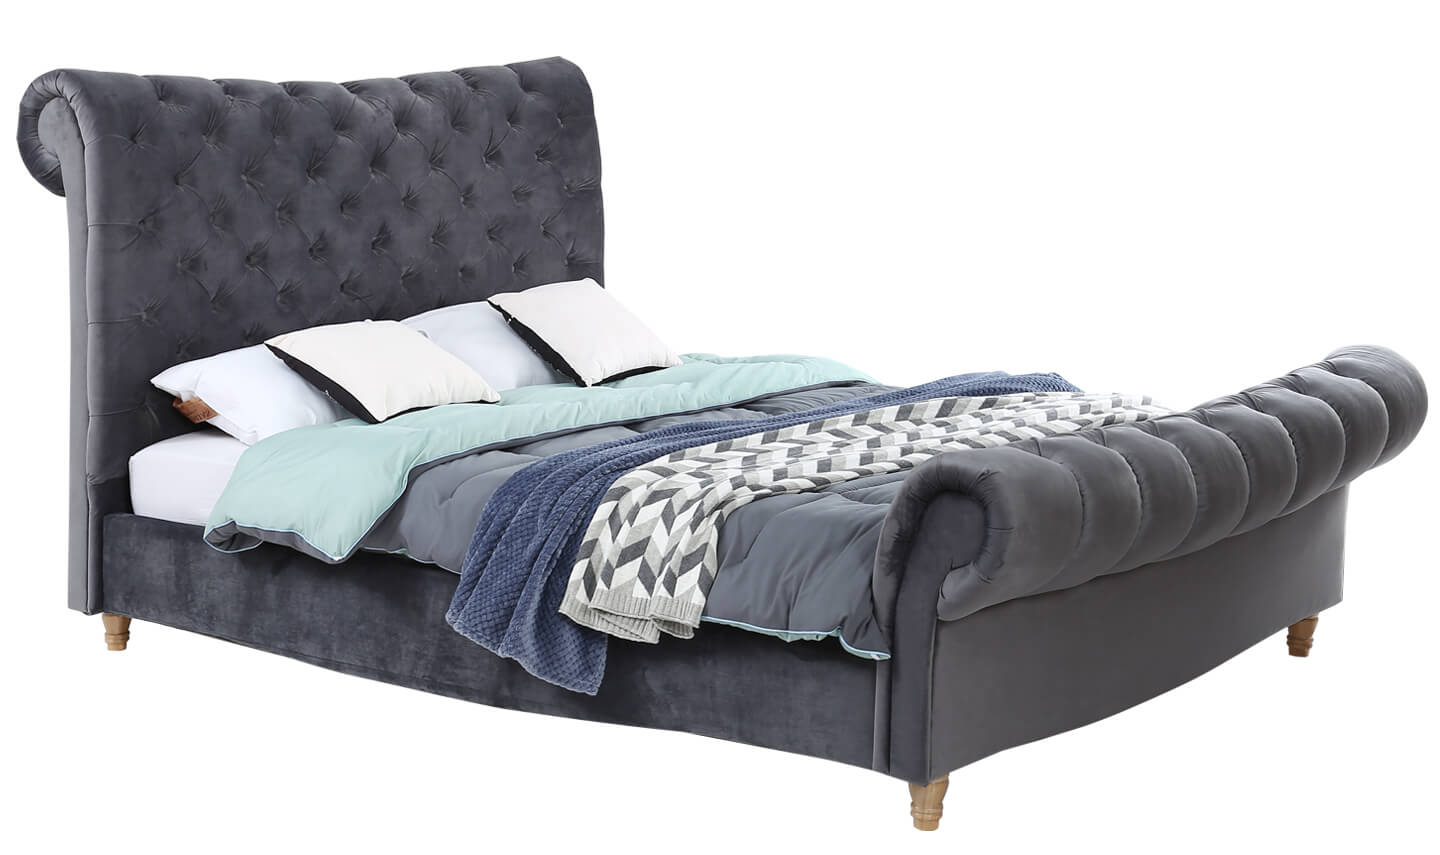 Sloane 5' Bed Grey